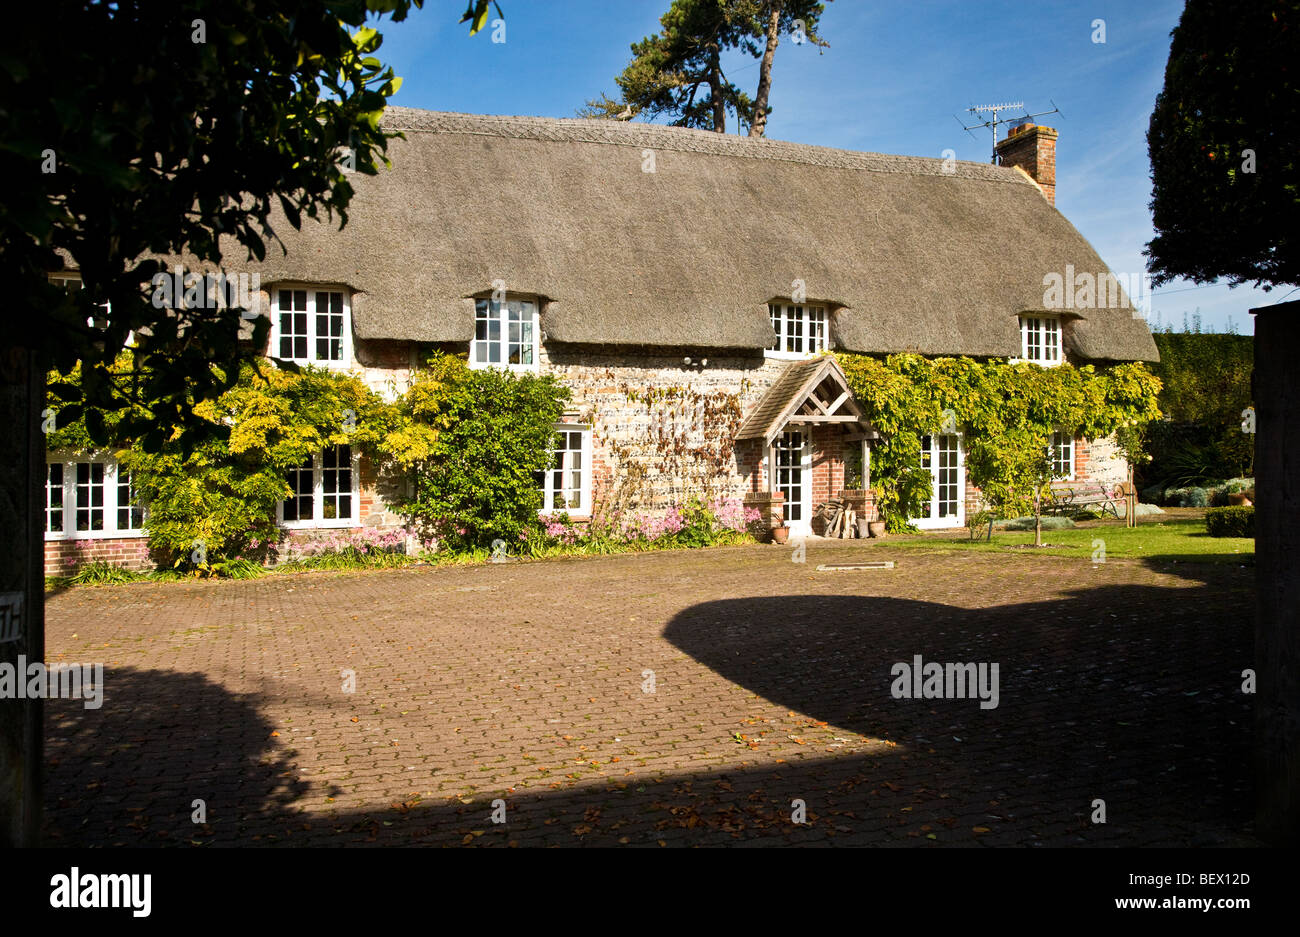 Typical English thatched stone country village cottage in Ogbourne St.George in Wiltshire, England, UK - Stock Image